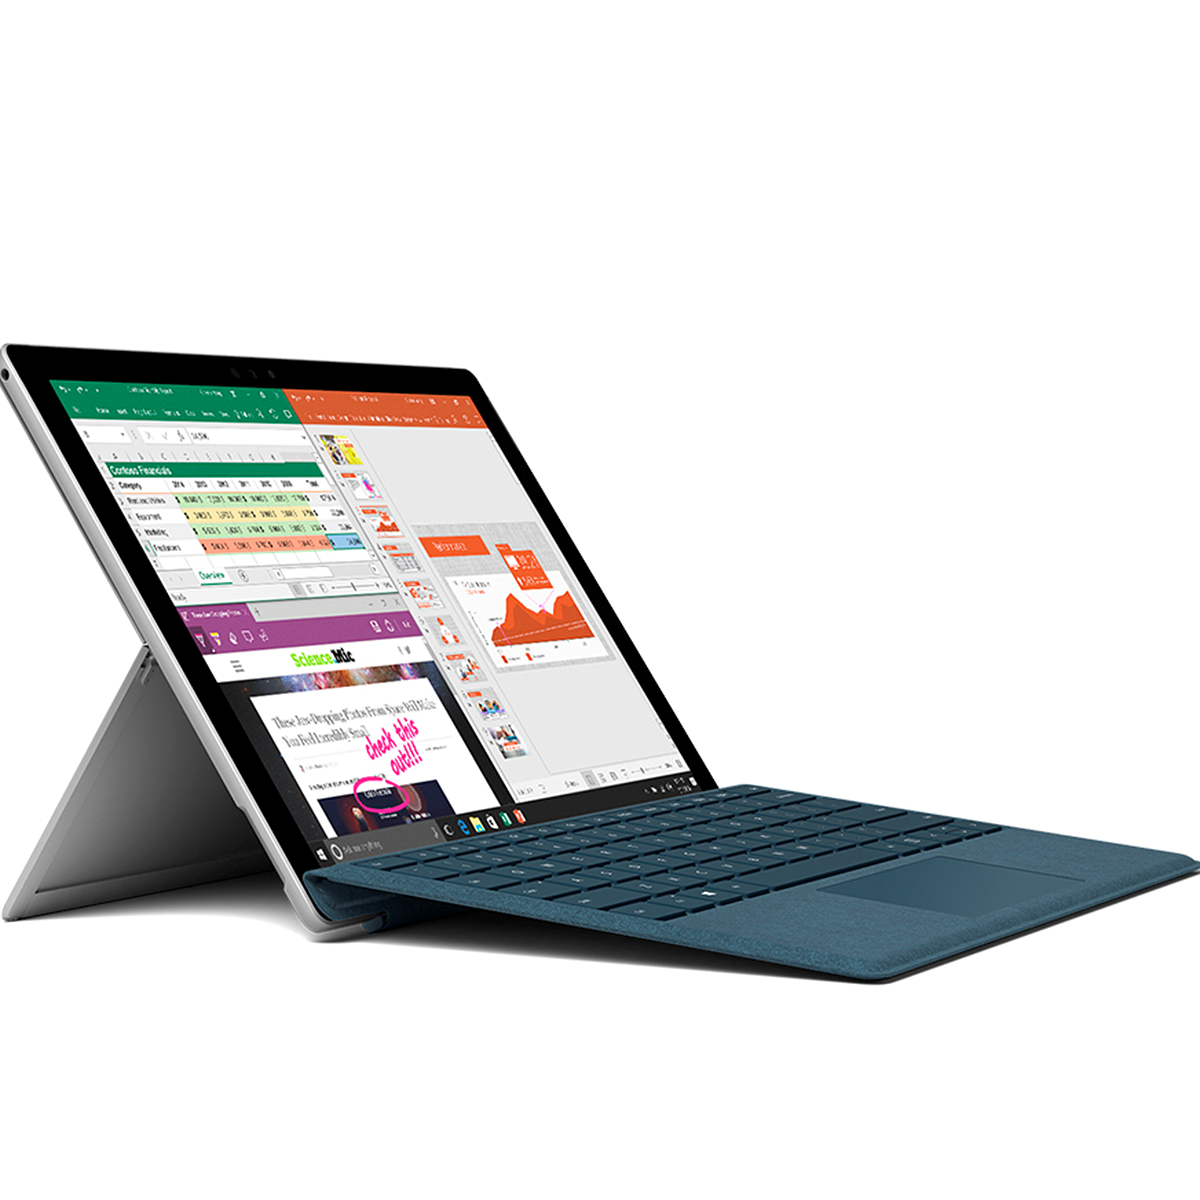 The new Surface Pro: new processors, boosted battery life